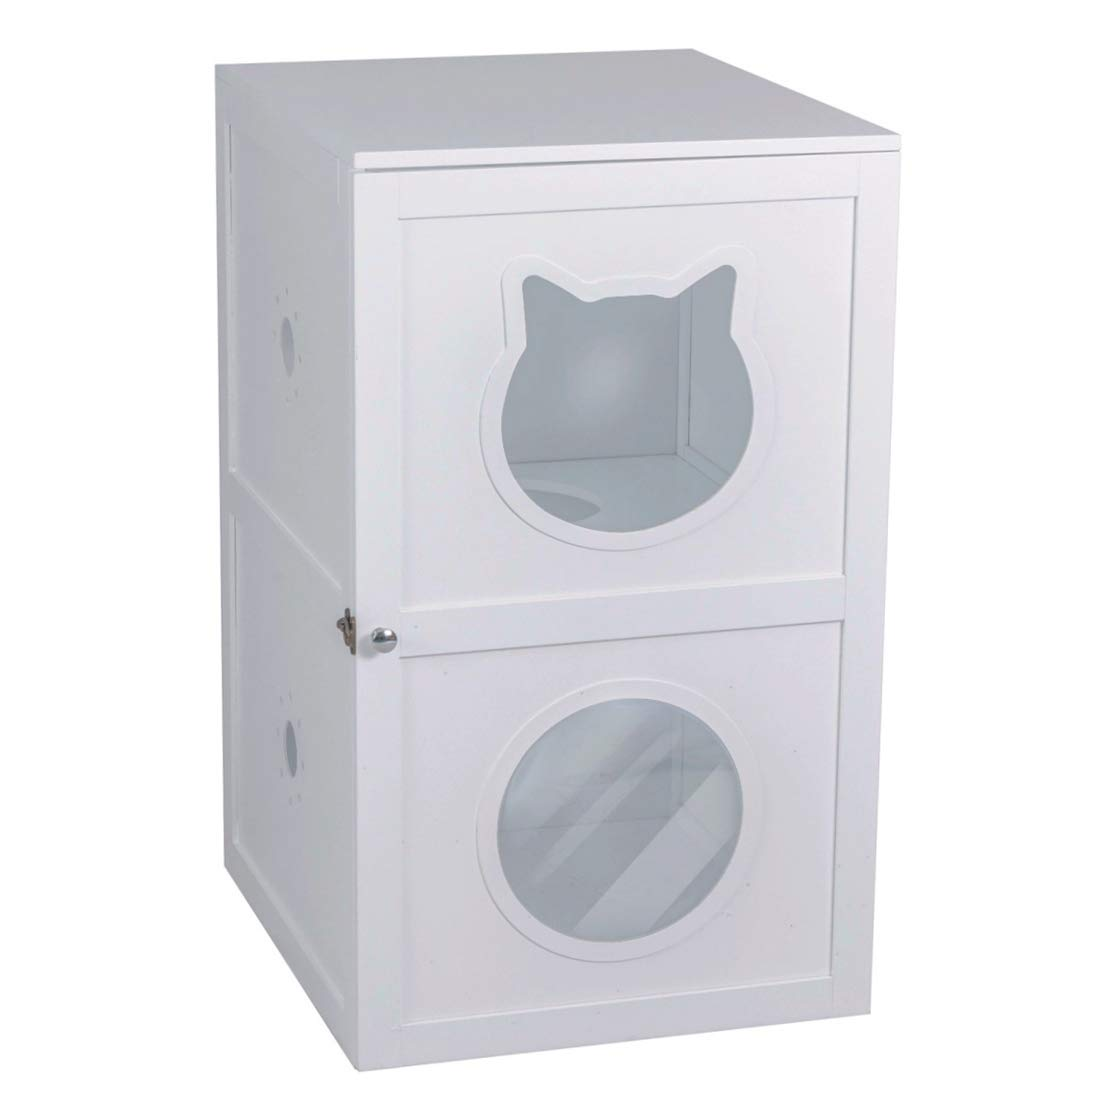 Good Life Double-Decker Indoor Pet Crate 2 Story Cat Litter Box Enclosure Furniture Cat House with Table Home Nightstand Large Box White Color